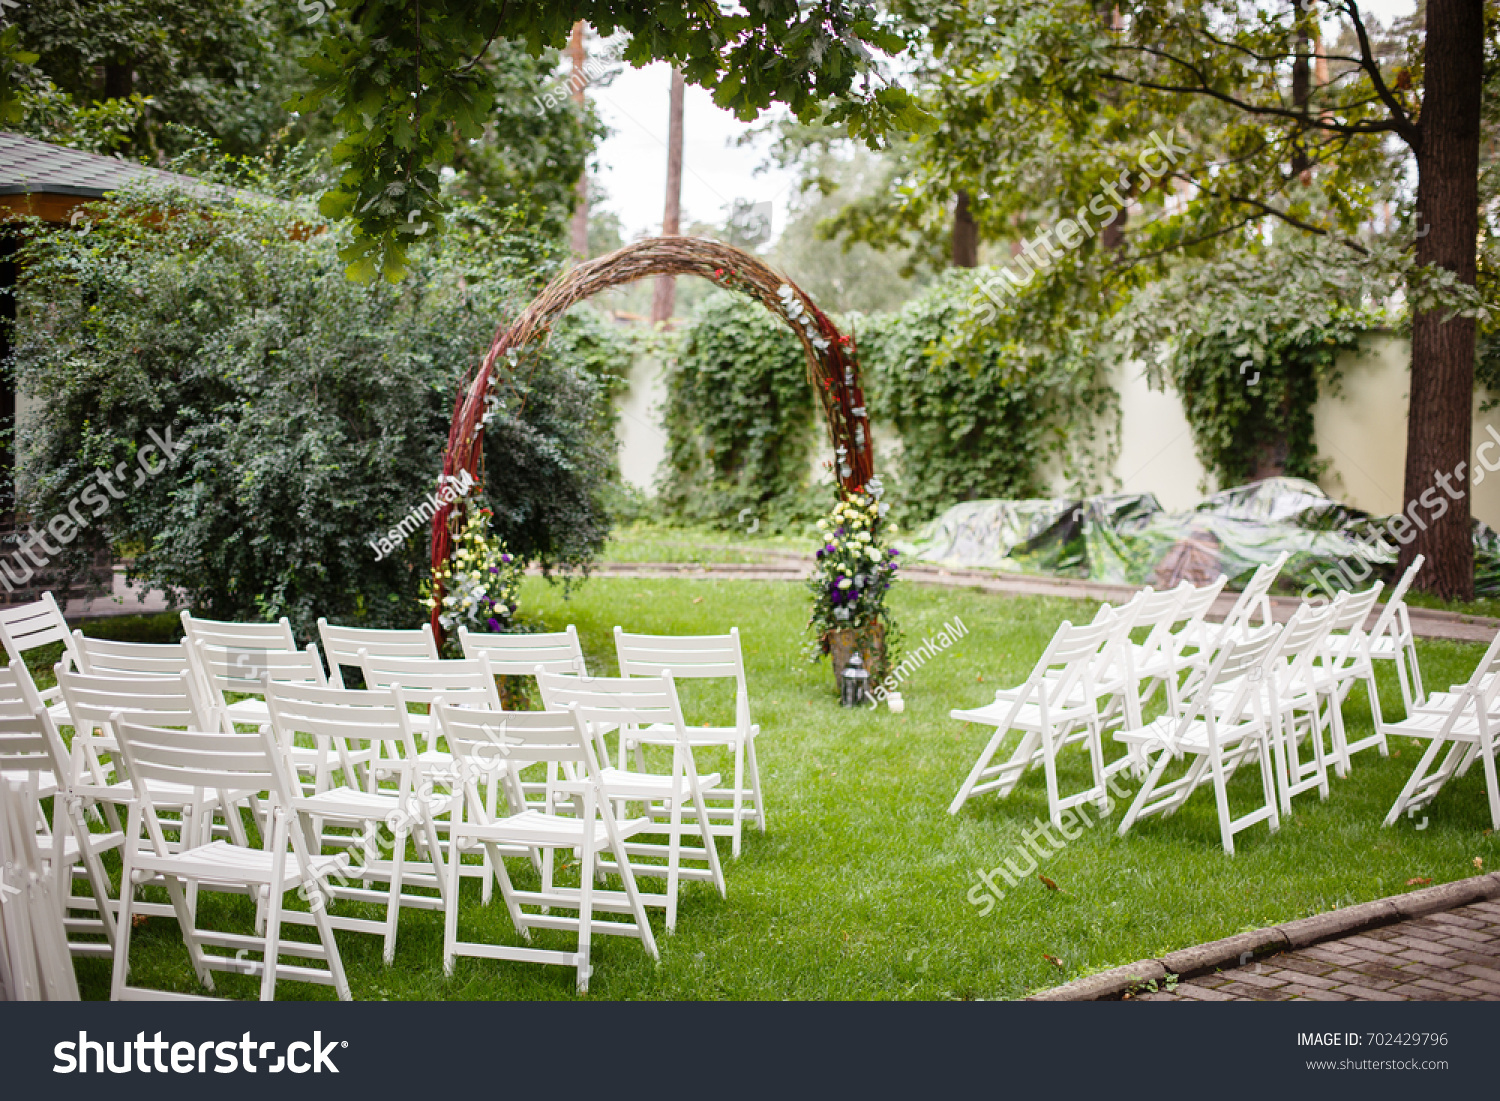 Wedding set garden wedding ceremony wedding stock photo edit now wedding set up in a garden wedding ceremony wedding decorationswedding archway with junglespirit Image collections